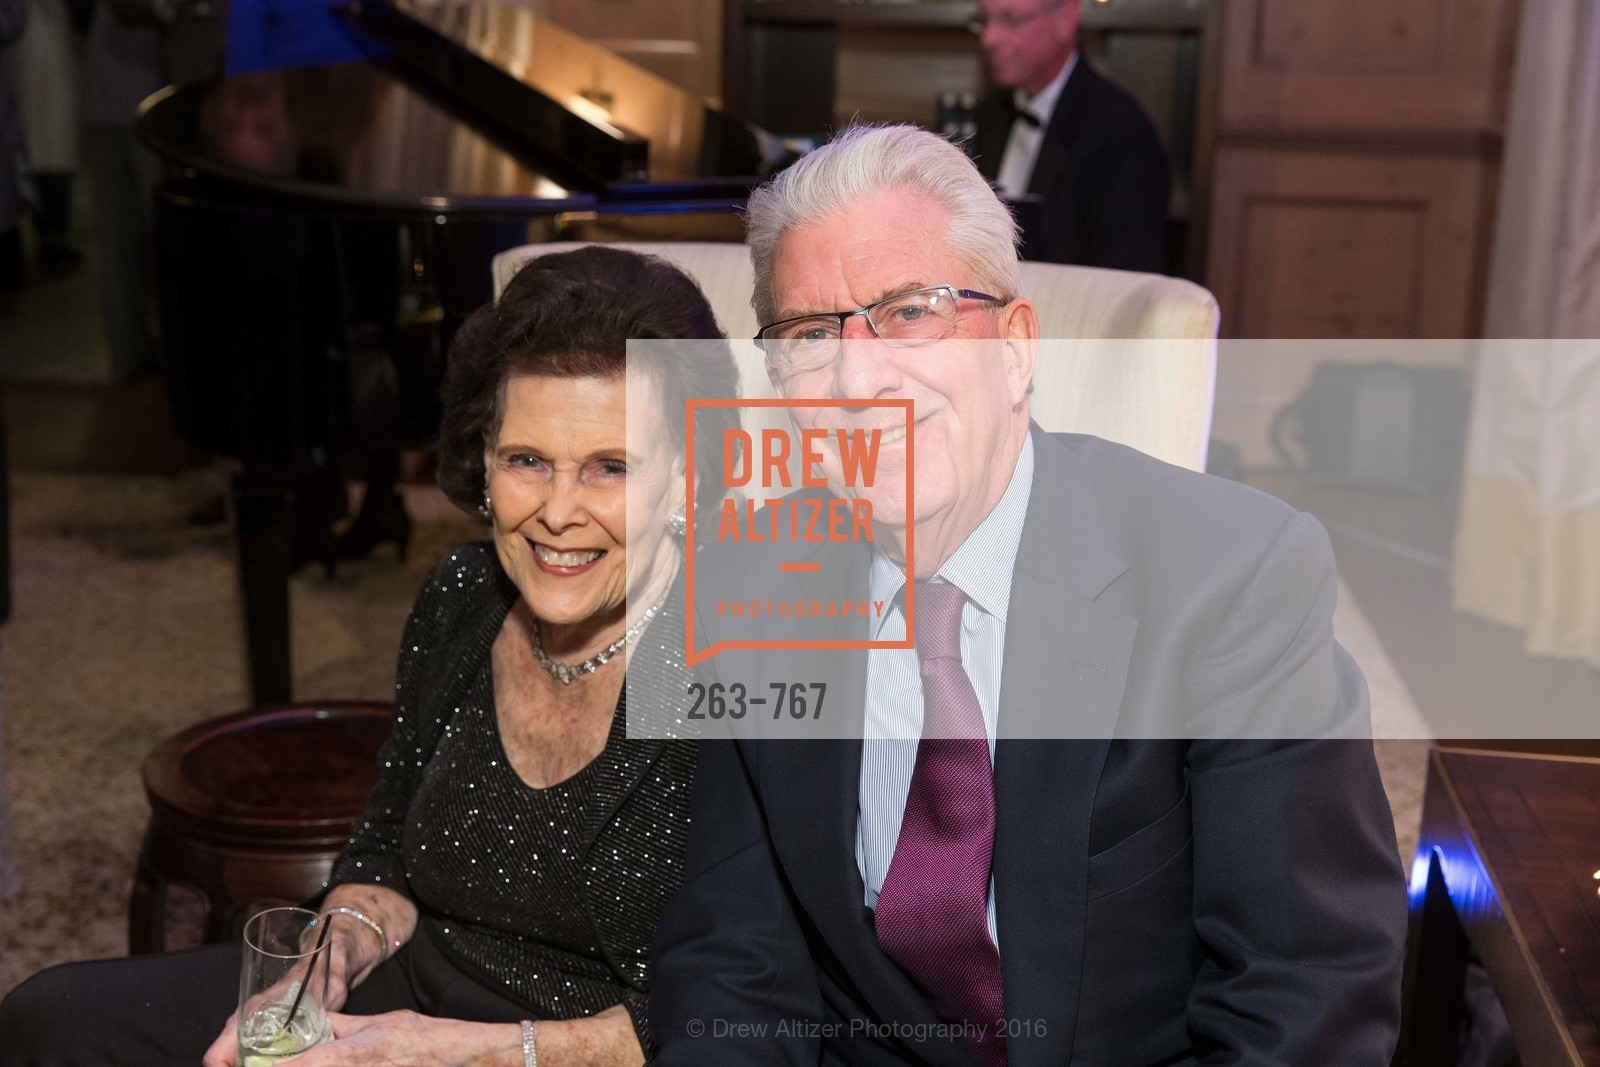 Lucy Jewett, Rich Guggenheim, A Special Reception with Tony Bennett, The Fairmont, San Francisco, The Penthouse Suite, January 26th, 2016,Drew Altizer, Drew Altizer Photography, full-service agency, private events, San Francisco photographer, photographer california